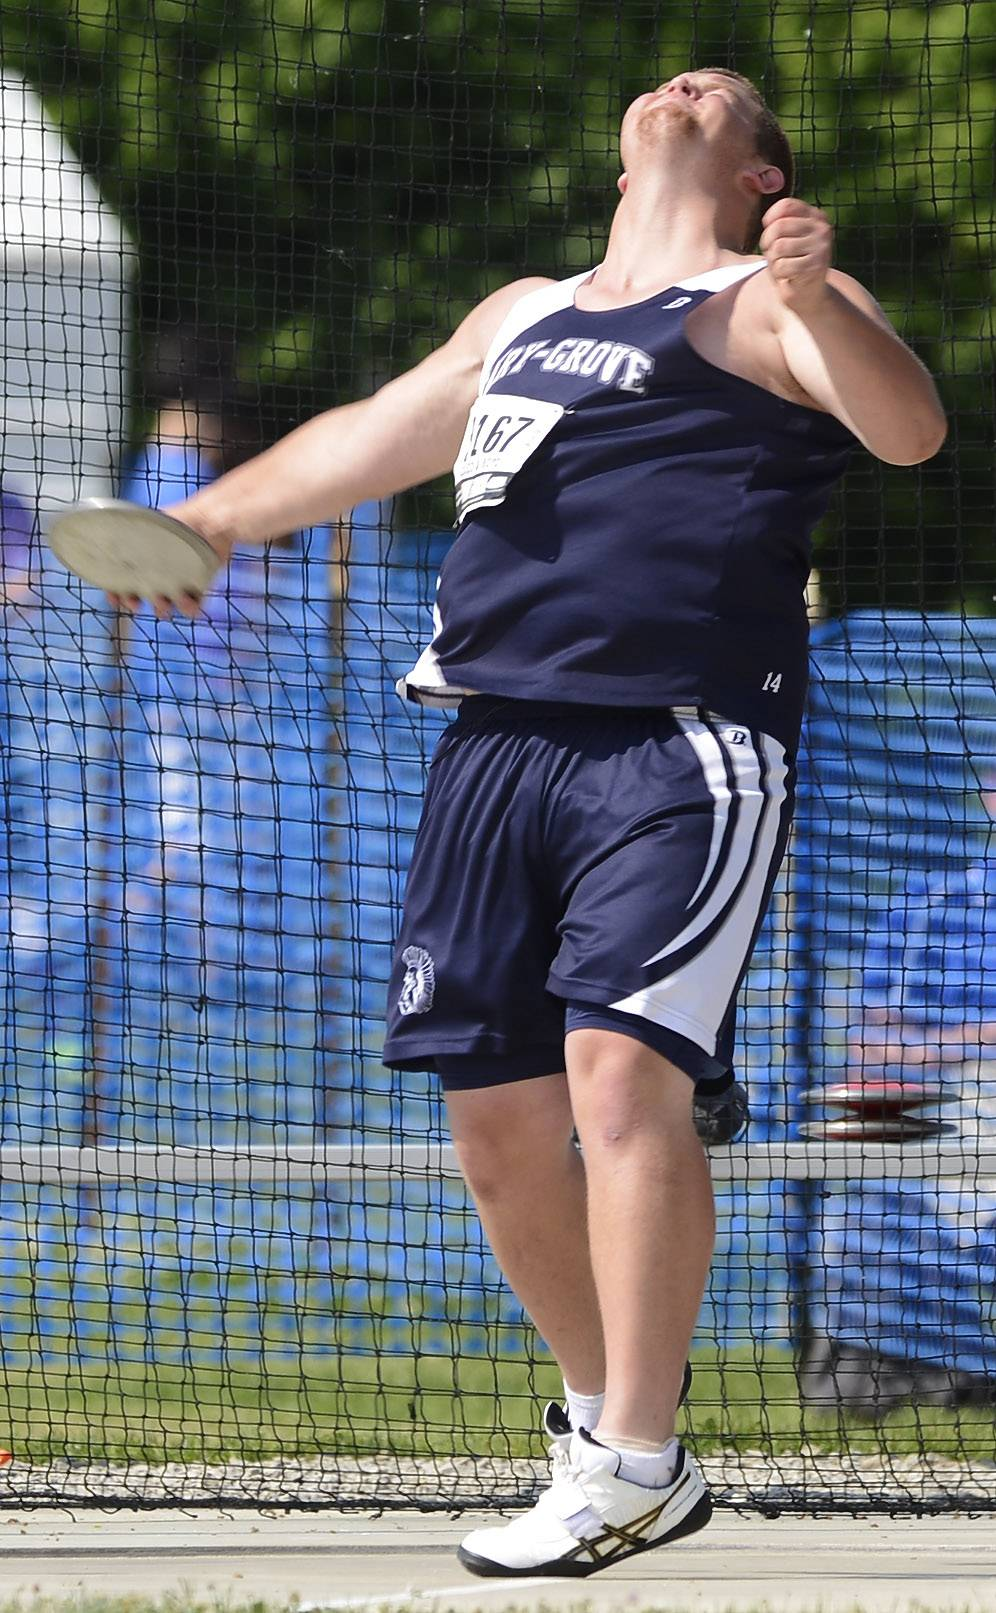 Cary-Grove's Ricky Hurley competes in the discus during the Class 3A boys track and field state preliminaries in Charleston on Friday.